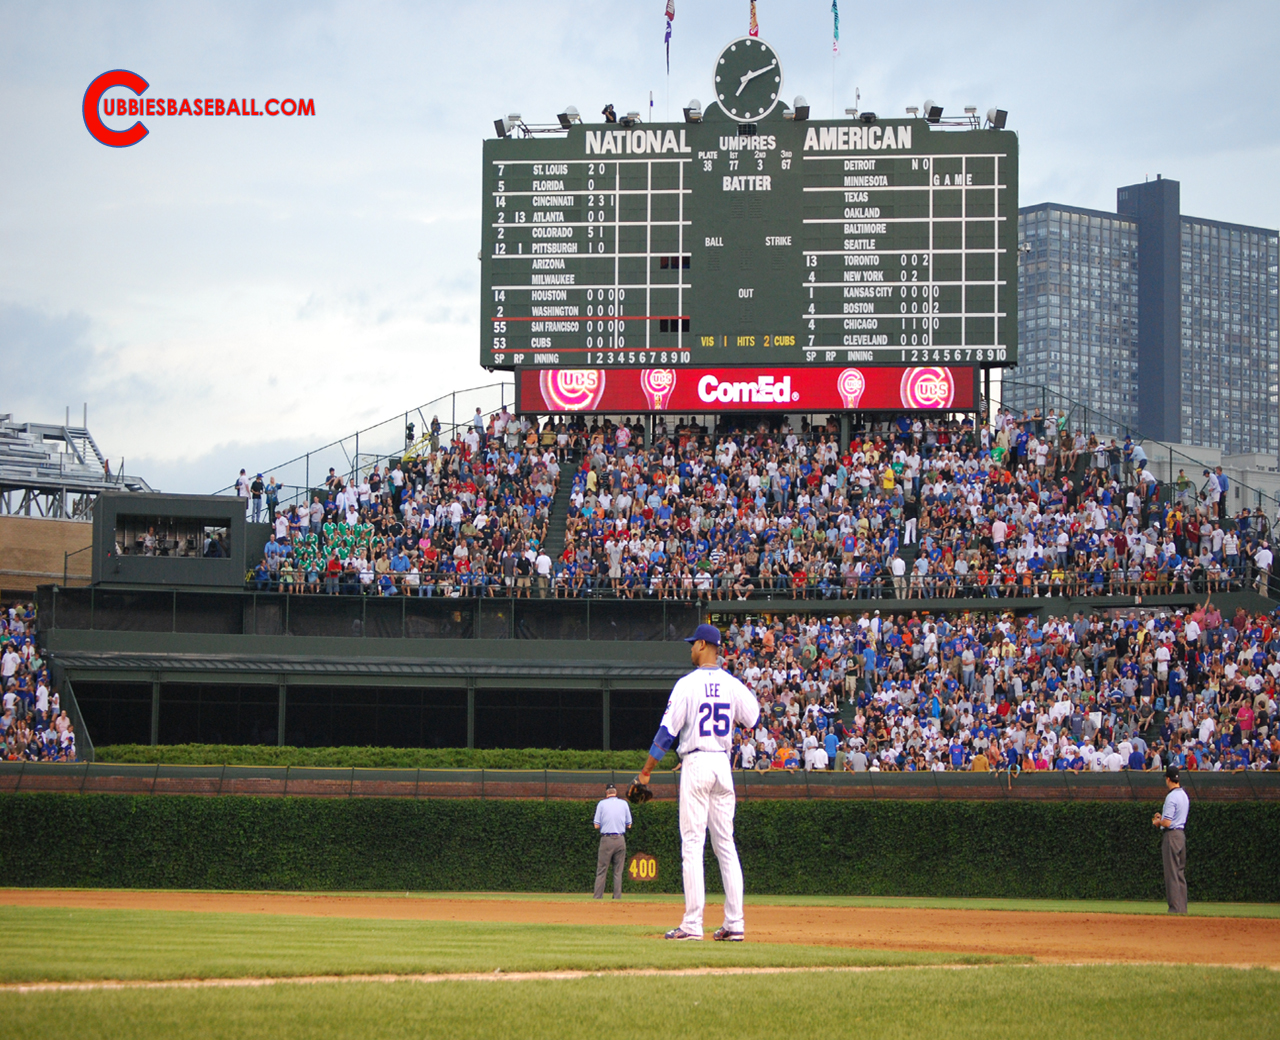 Chicago Cubs Desktop Wallpaper 1280x1040